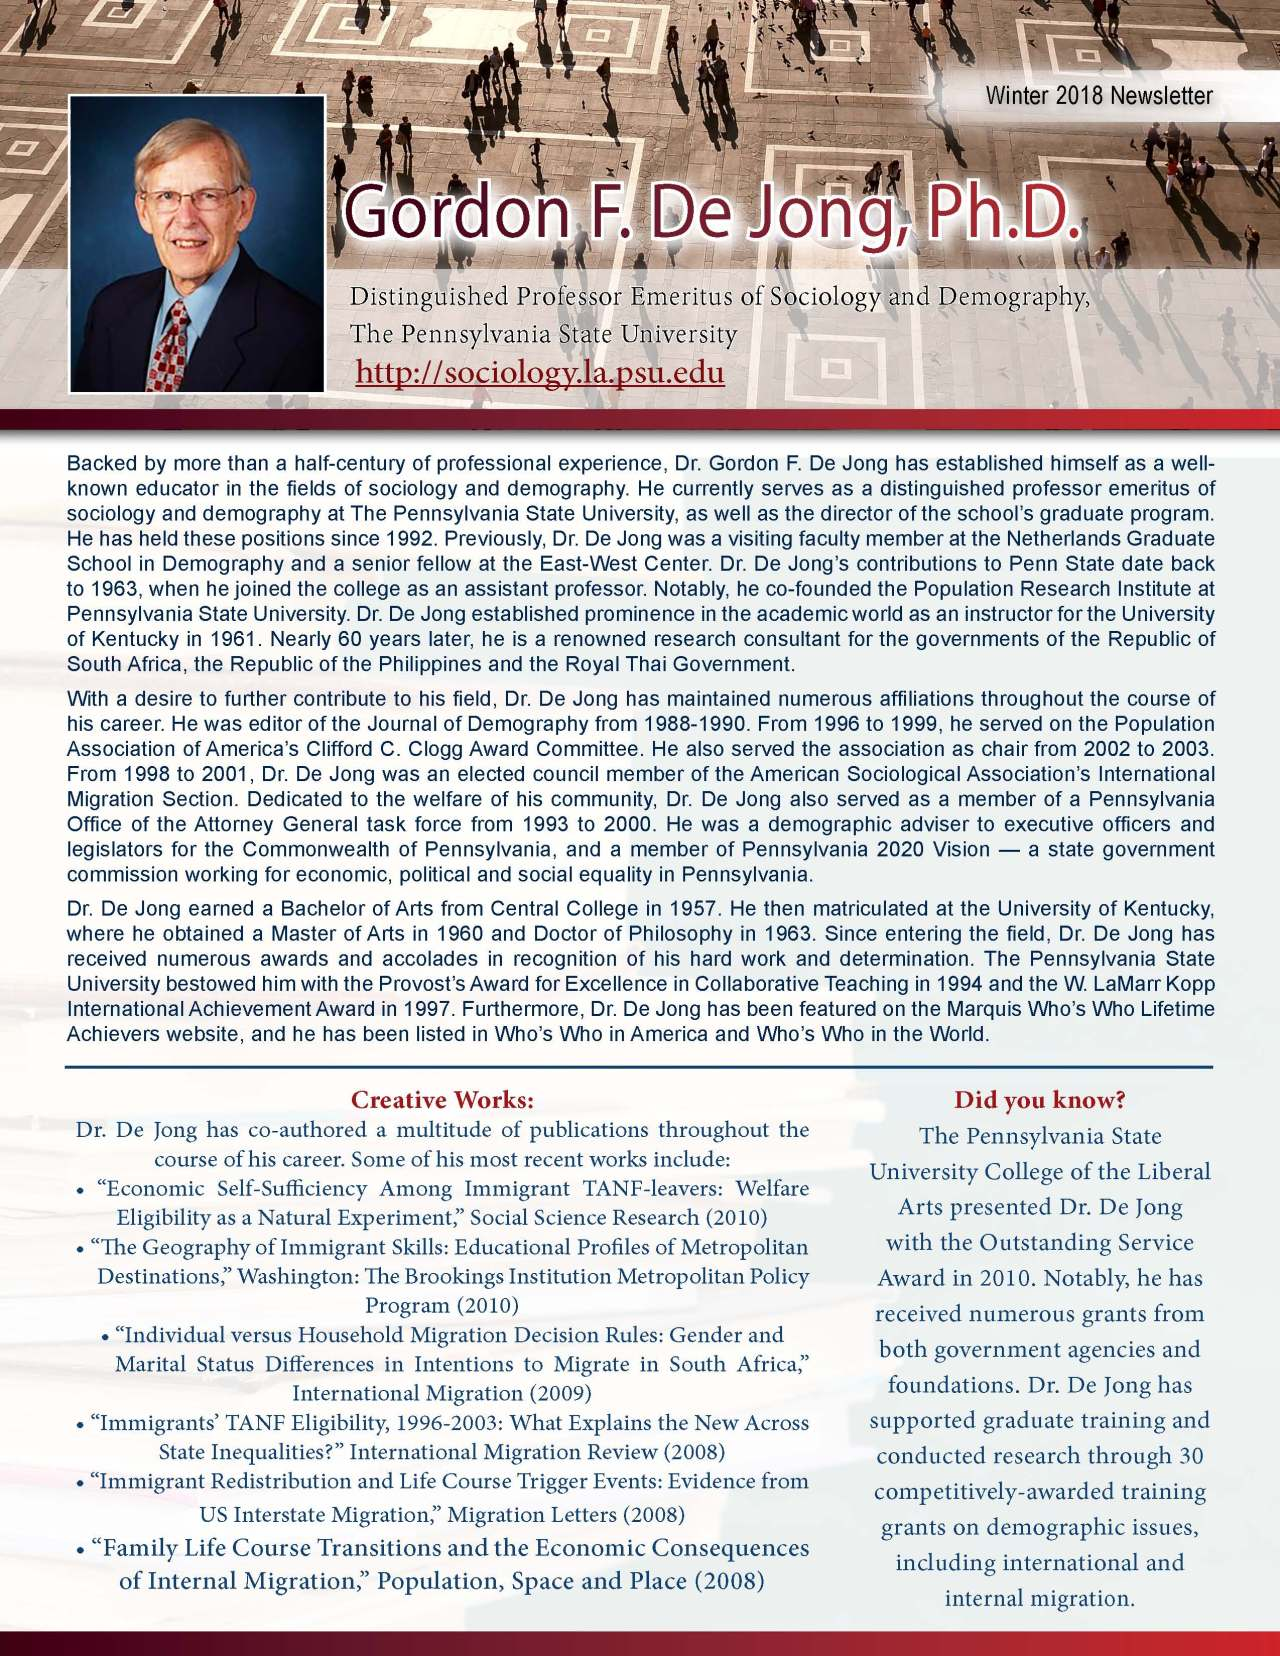 De Jong, Gordon 2193277_30462159 Newsletter REVISED.jpg